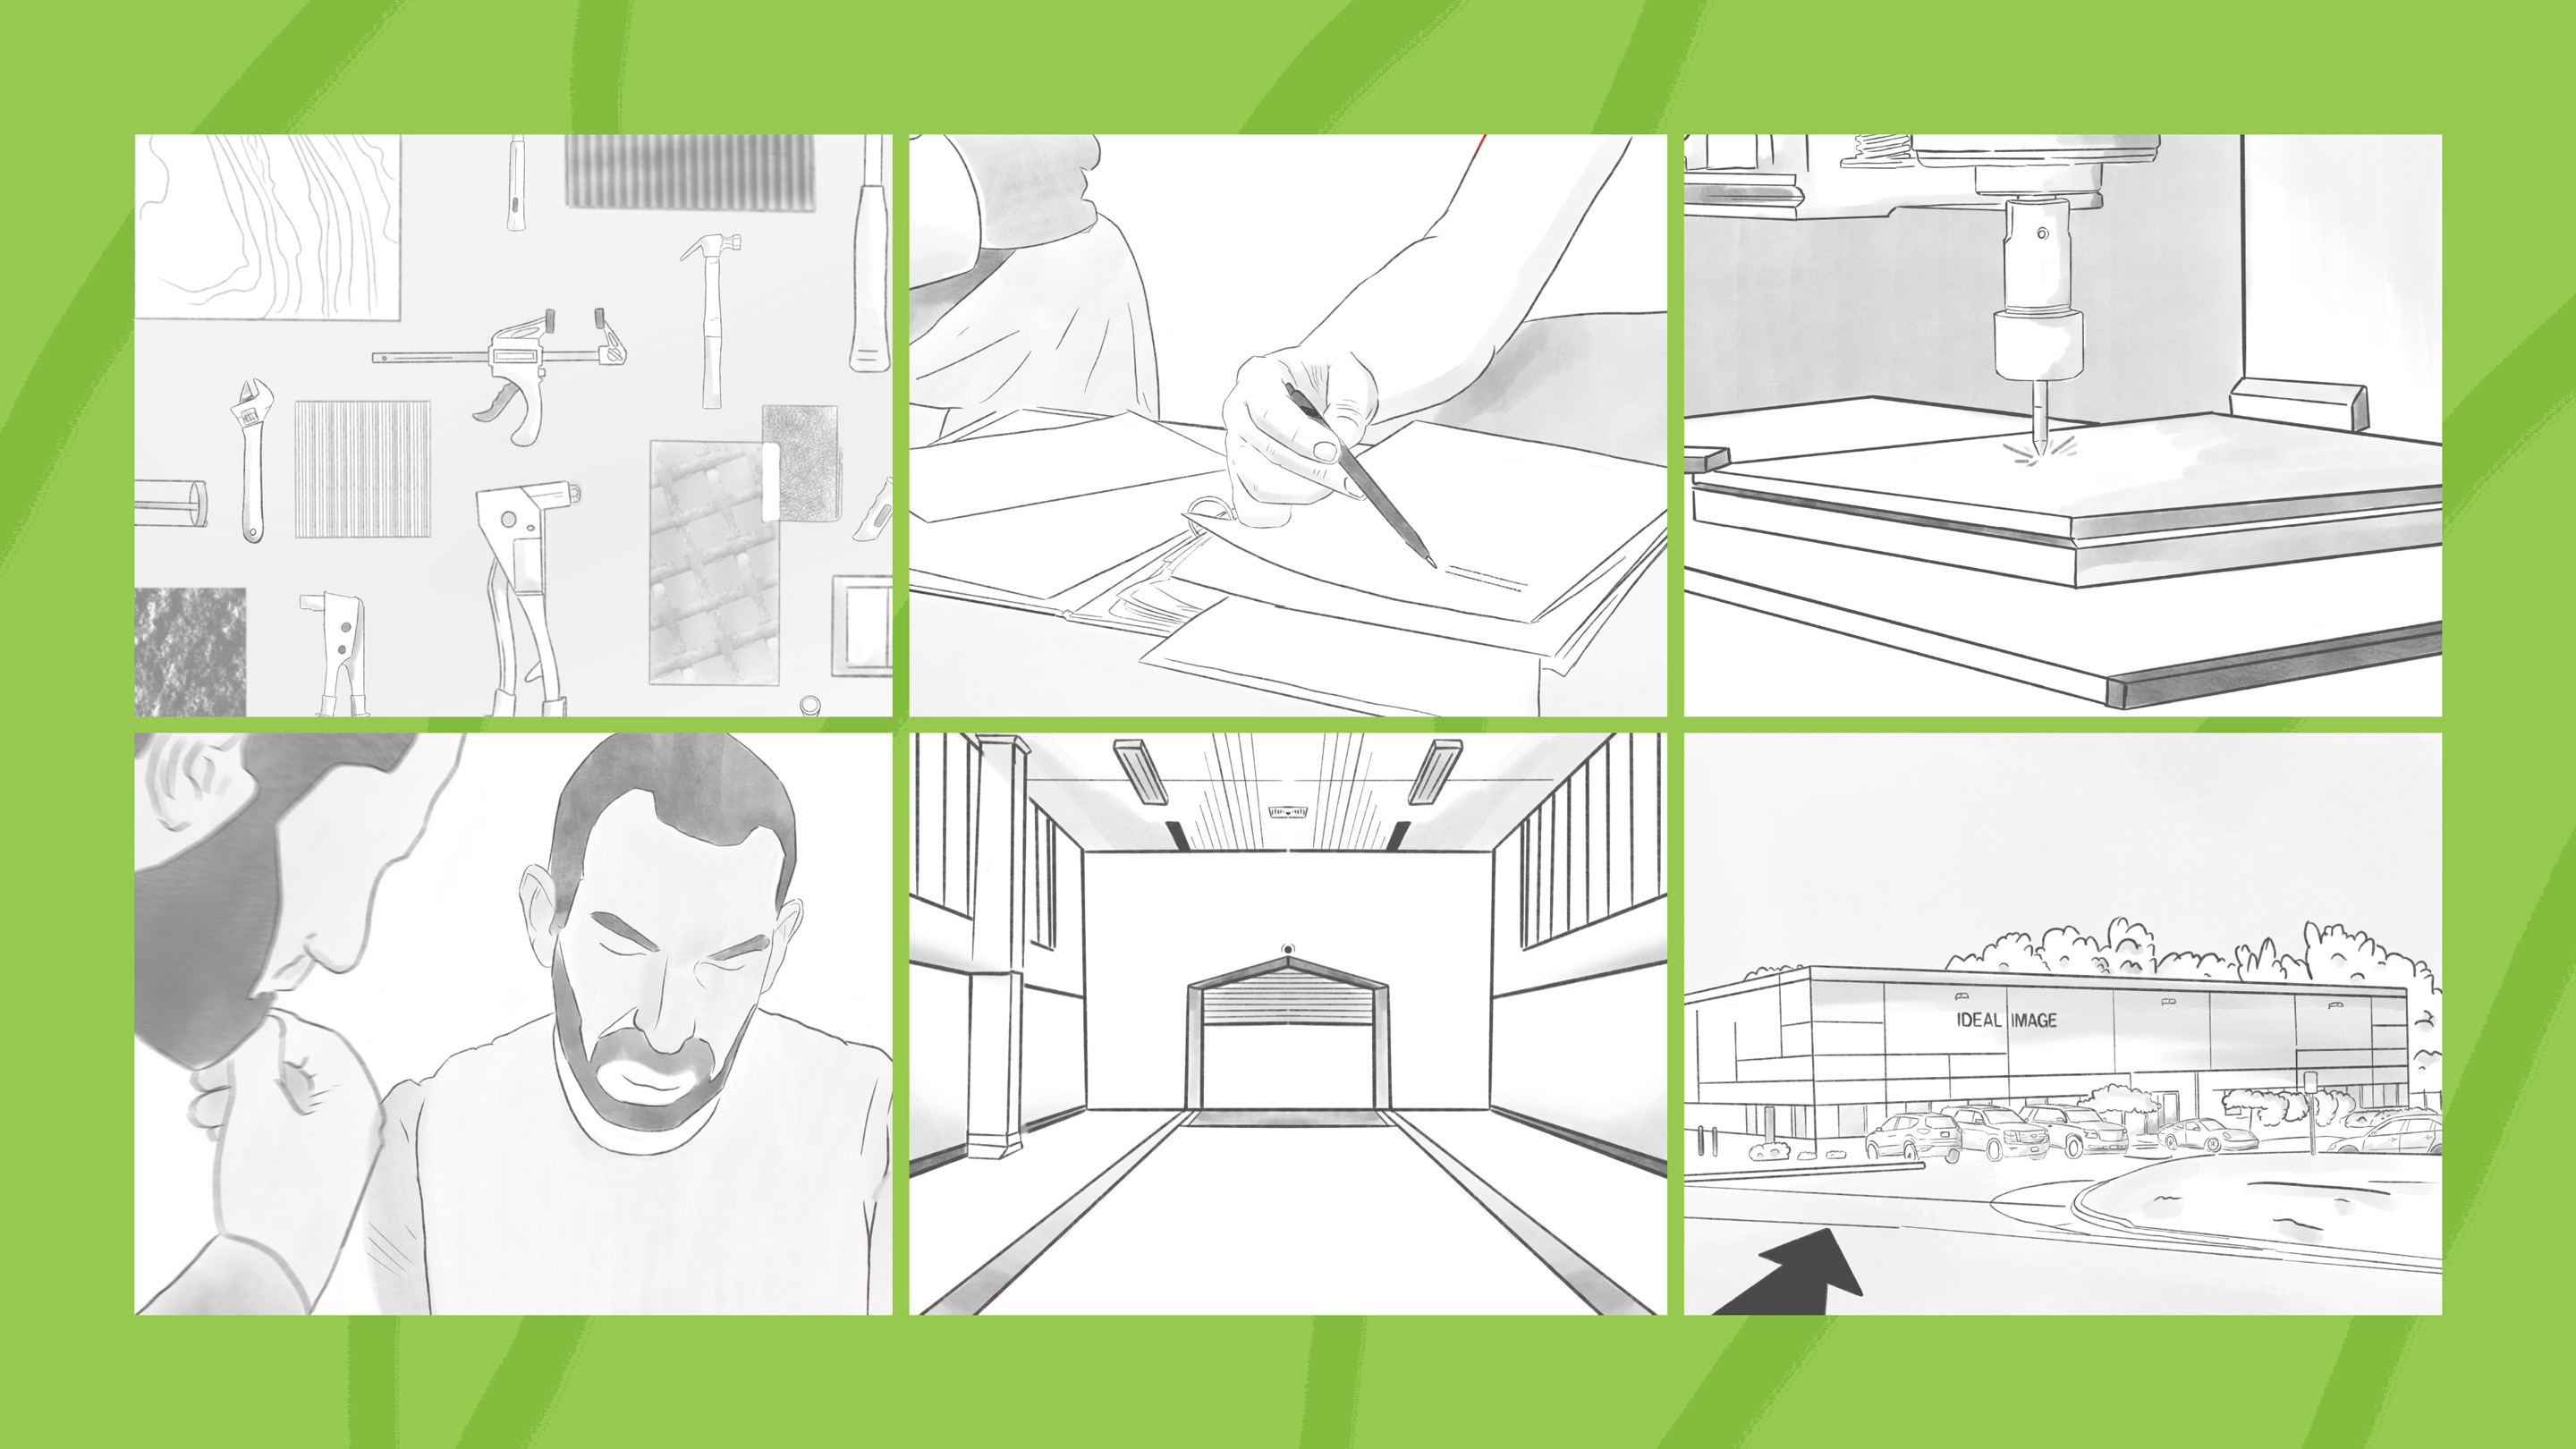 Ideal Image Case Study Storyboard for Brand Story